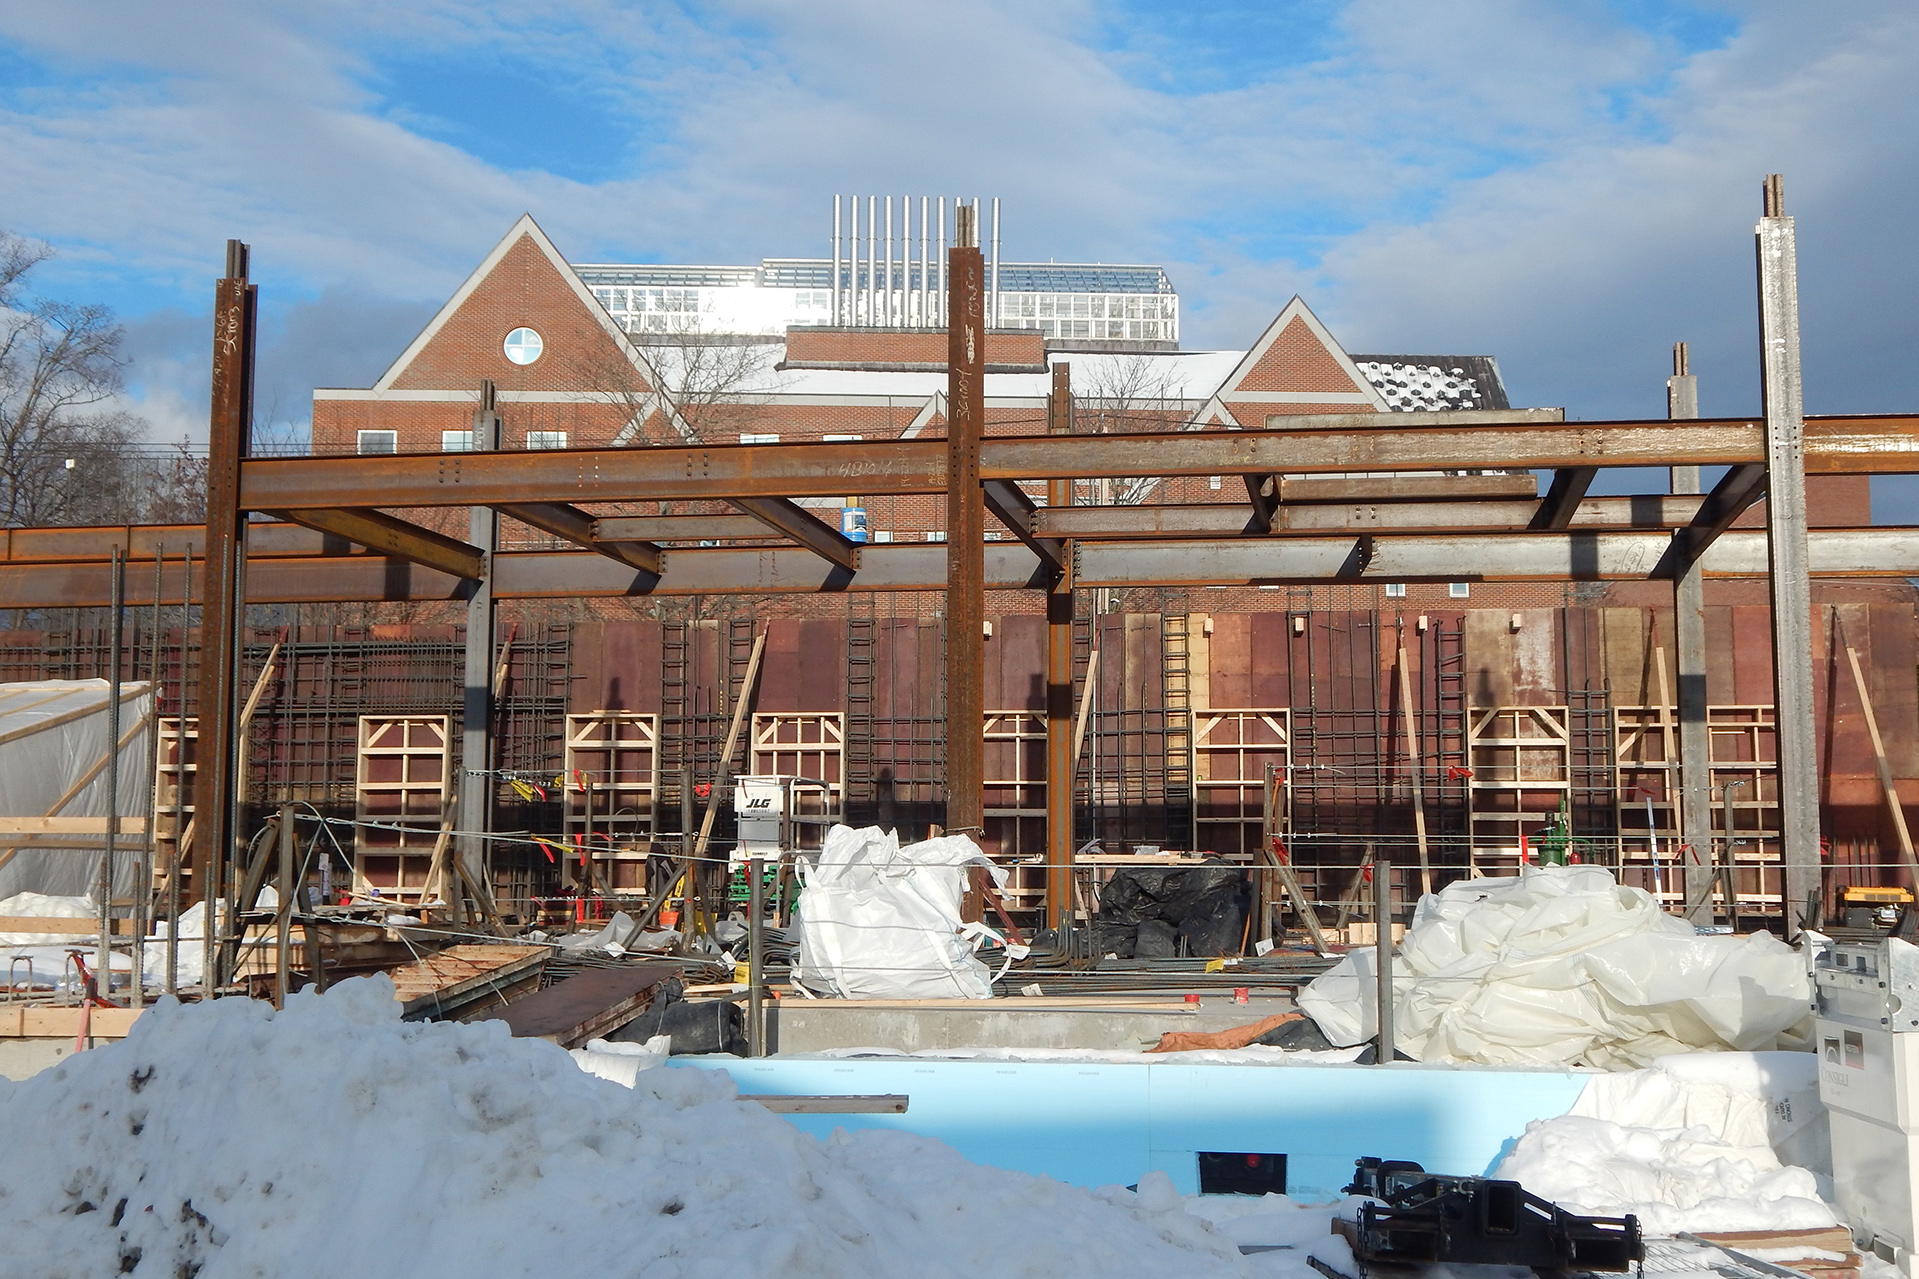 The state of things at the Bonney Science Center in early December 2019. In the background is a wall of concrete forms hung with rebar and window knockouts. Structural steel dominates the image. Showing at the bottom is blue insulation protecting the foundation wall. (Doug Hubley/Bates College)